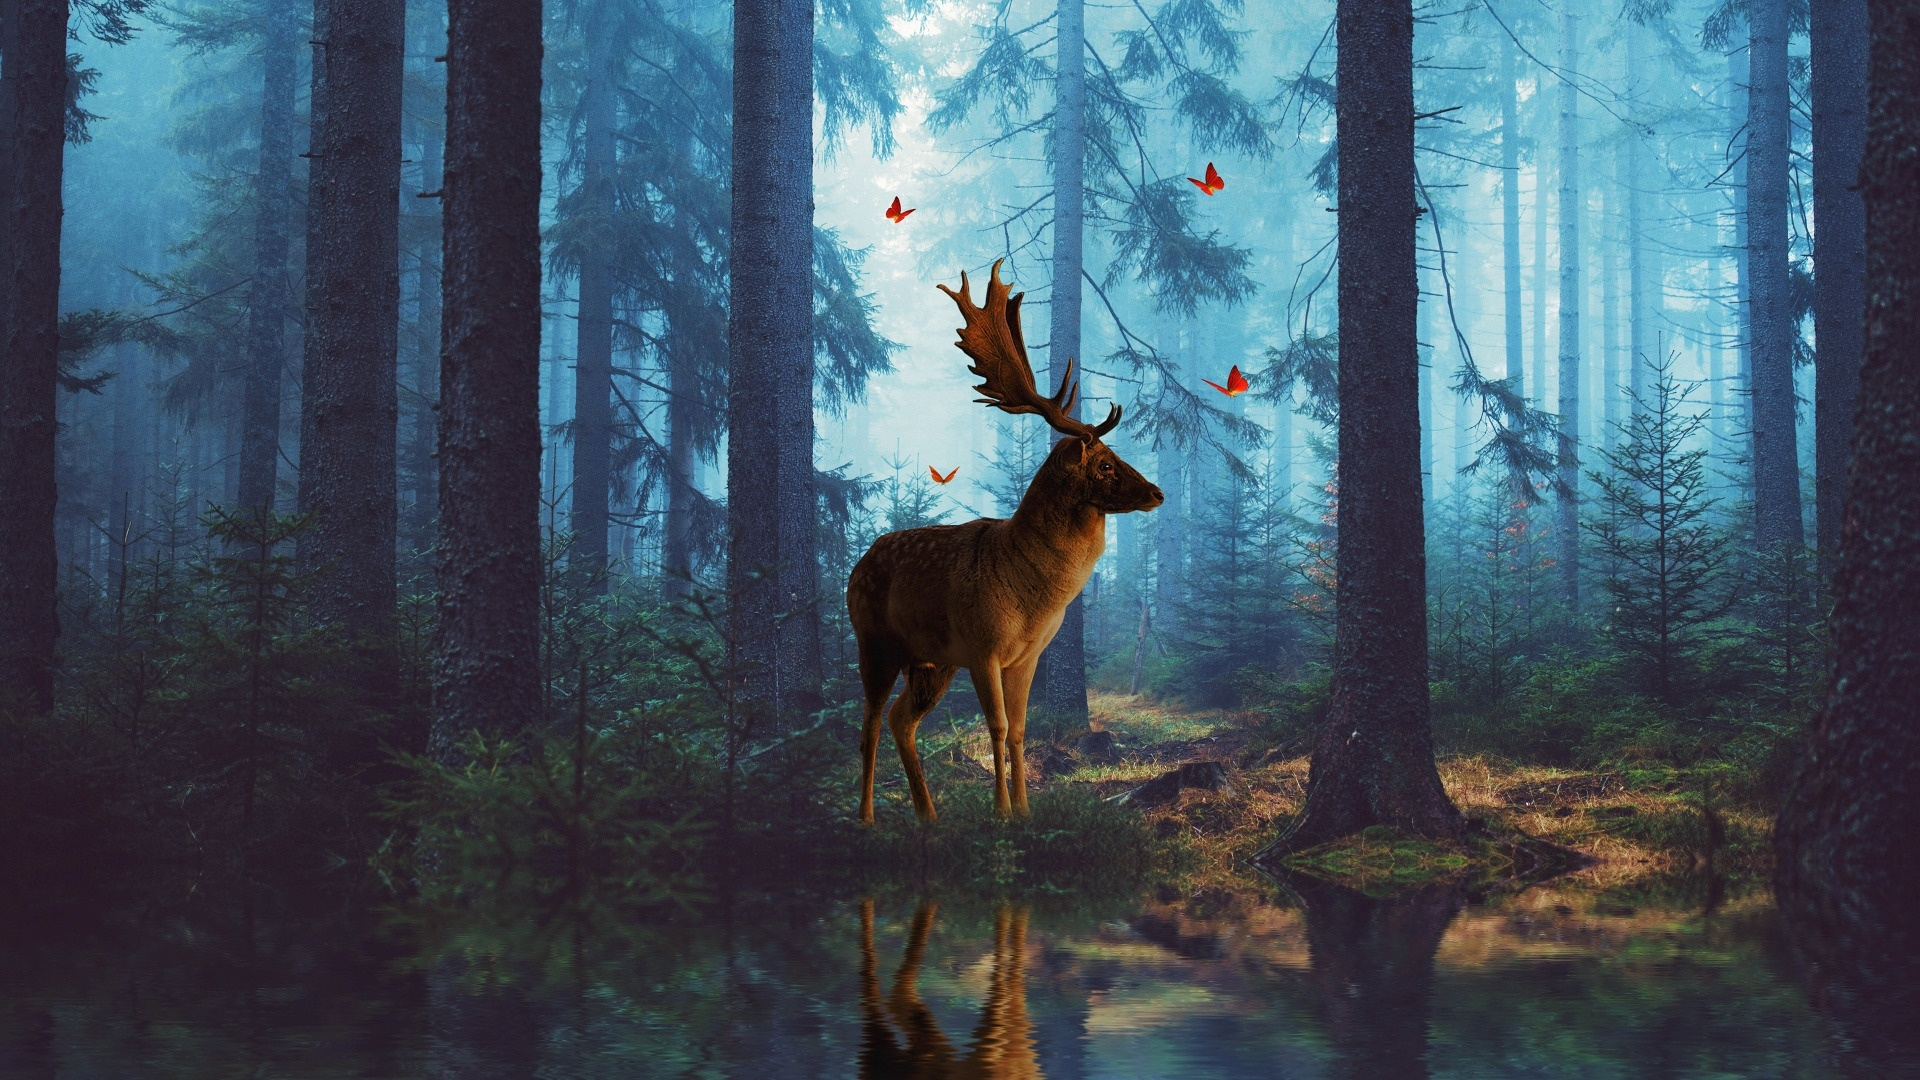 Deer In The Forest wallpaper for computer